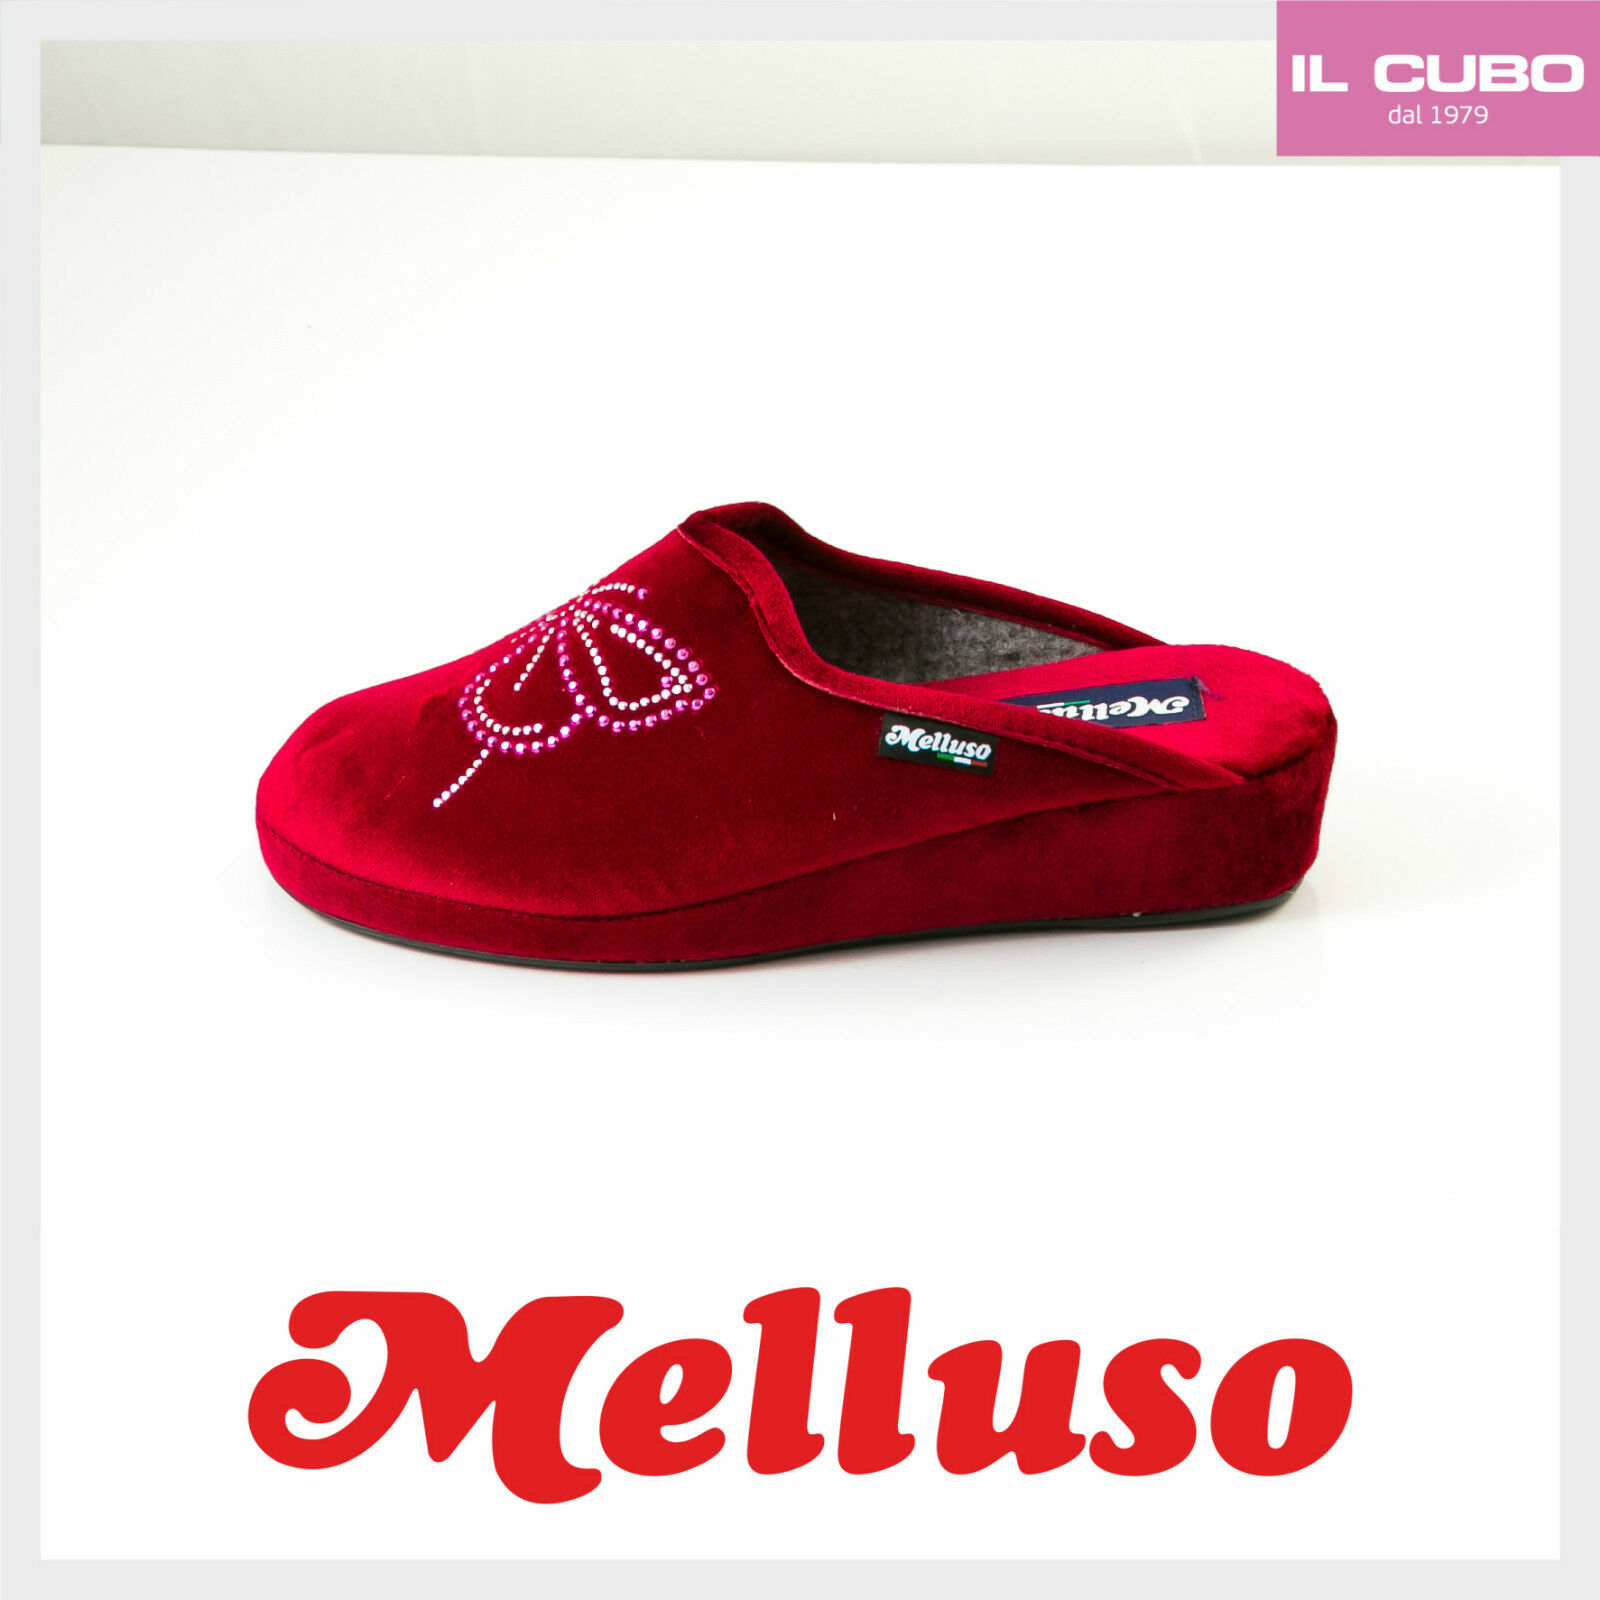 MELLUSO PANTOFOLA DONNA VELLUTO COLORE ROSSO ZEPPA H 3 CM MADE IN ITALY